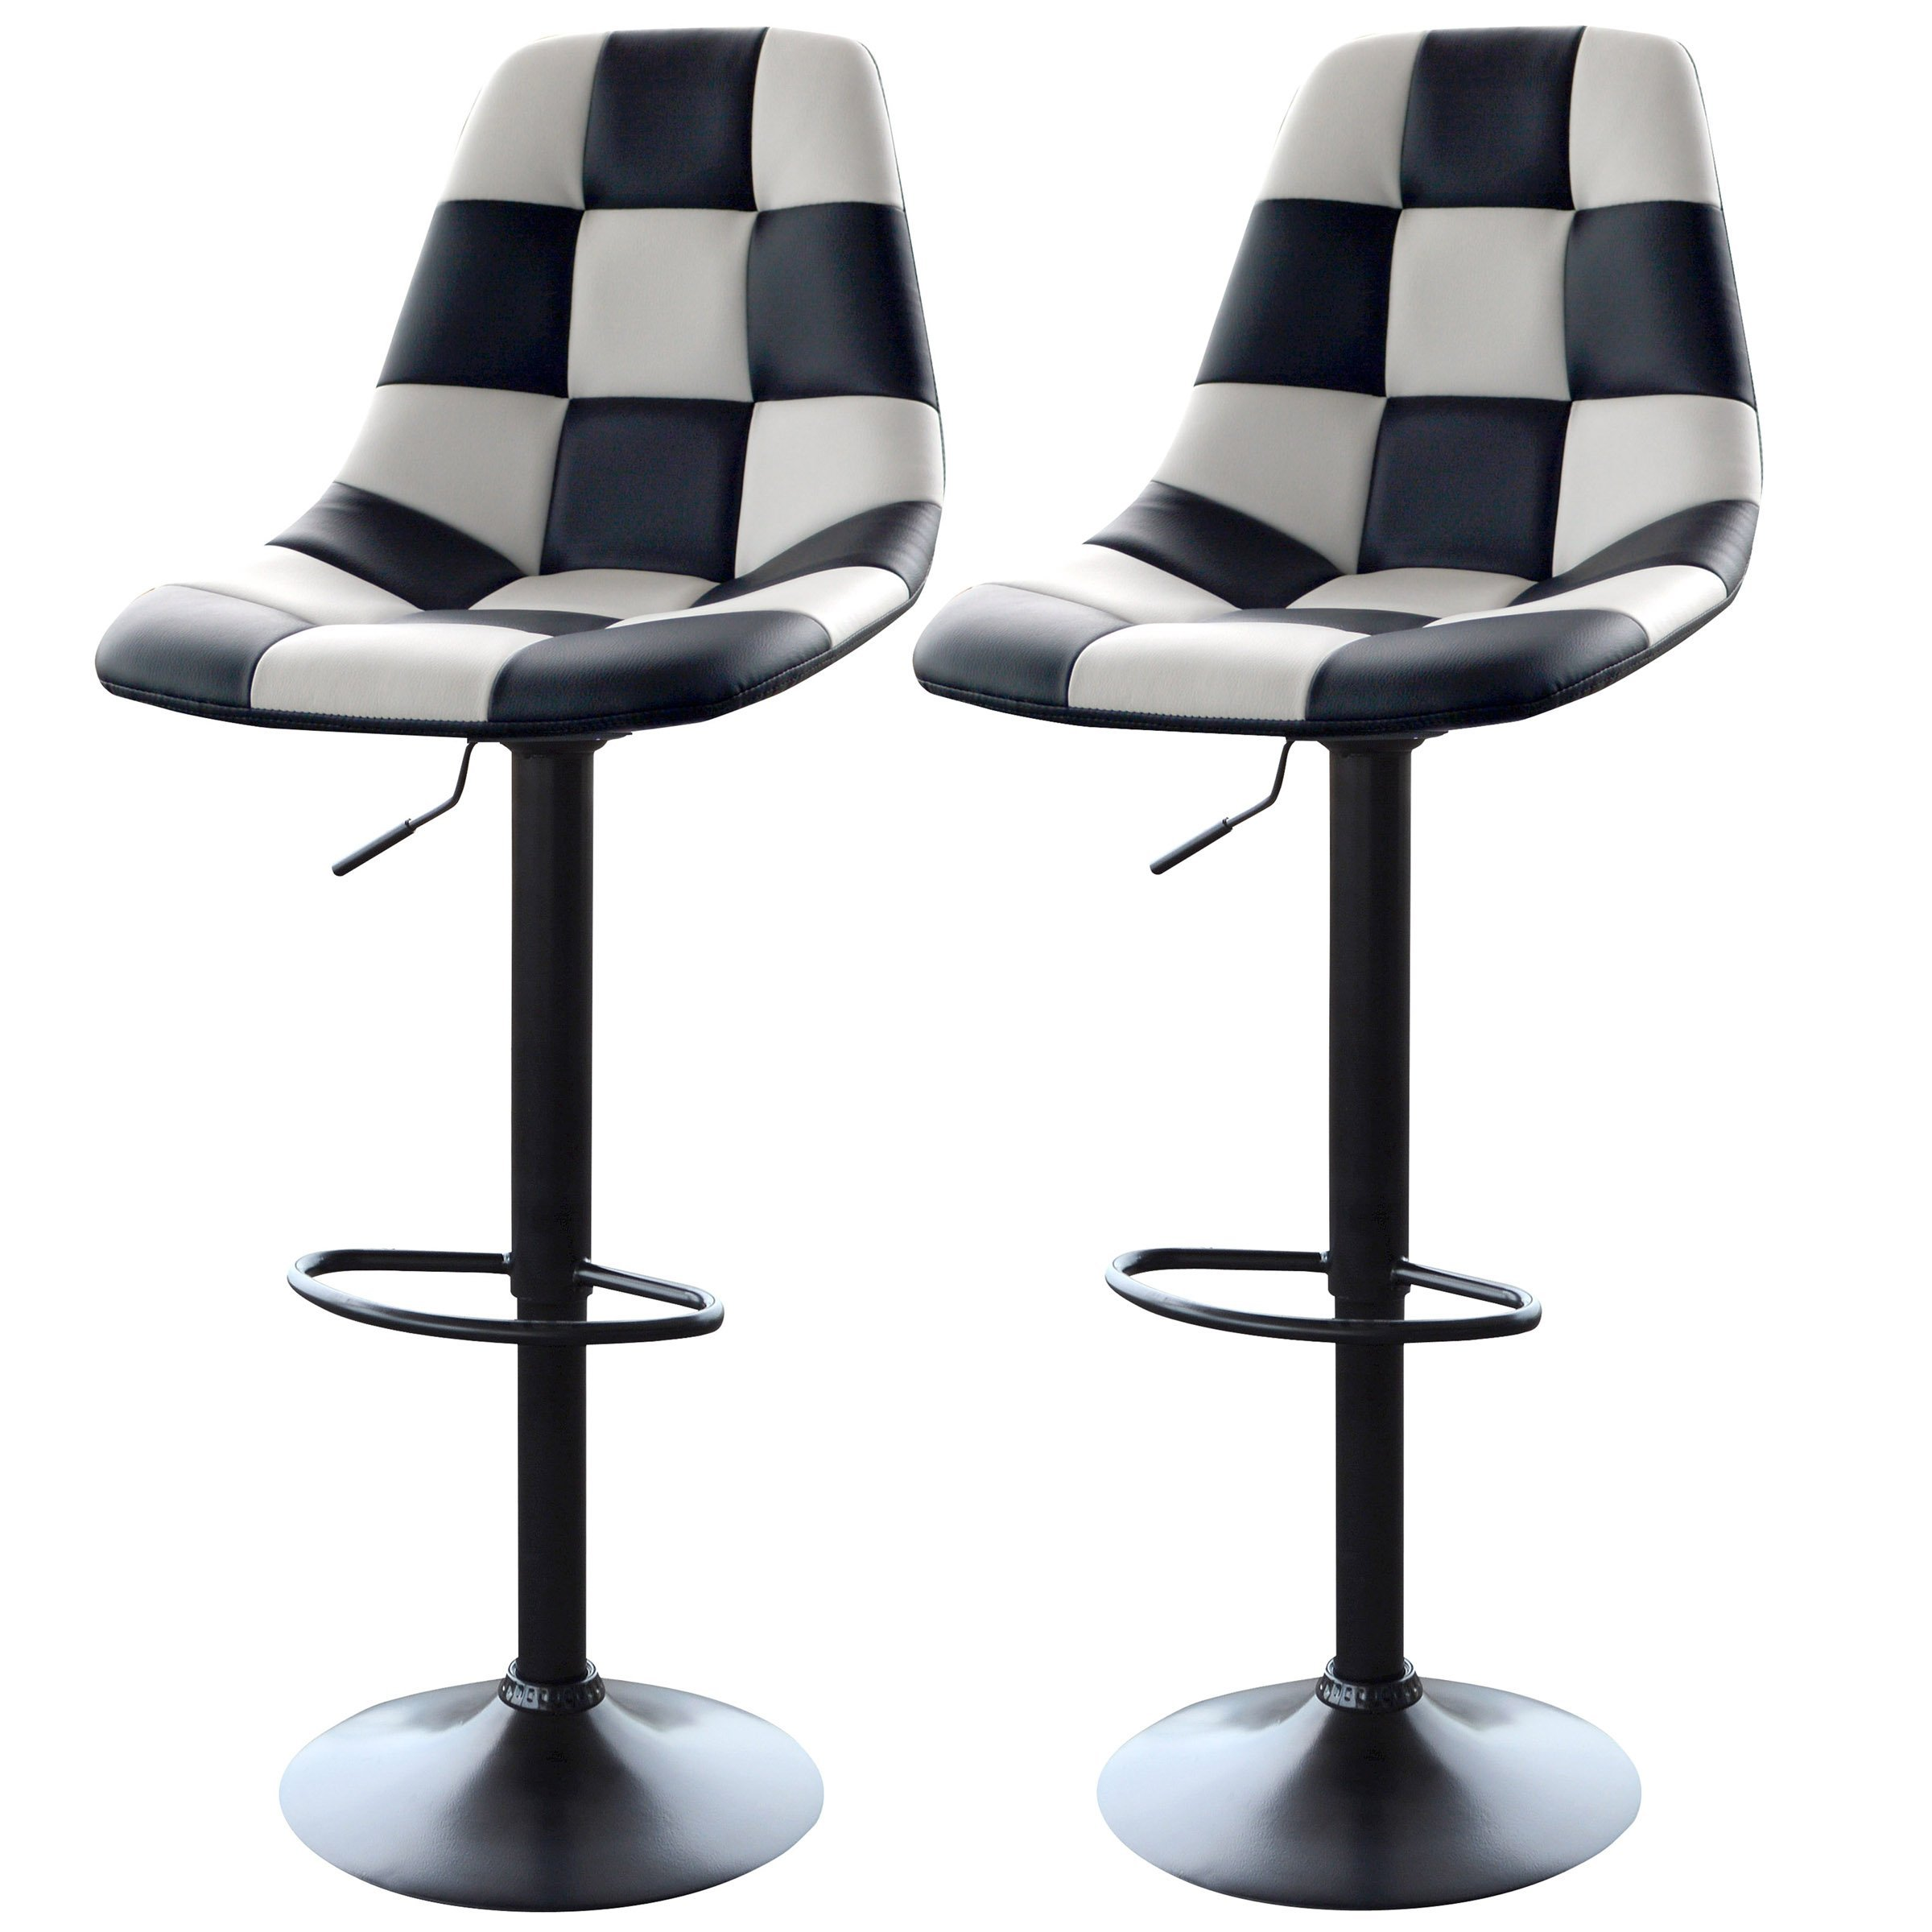 AmeriHome Checkered Racing Bar Chairs - Set of 2